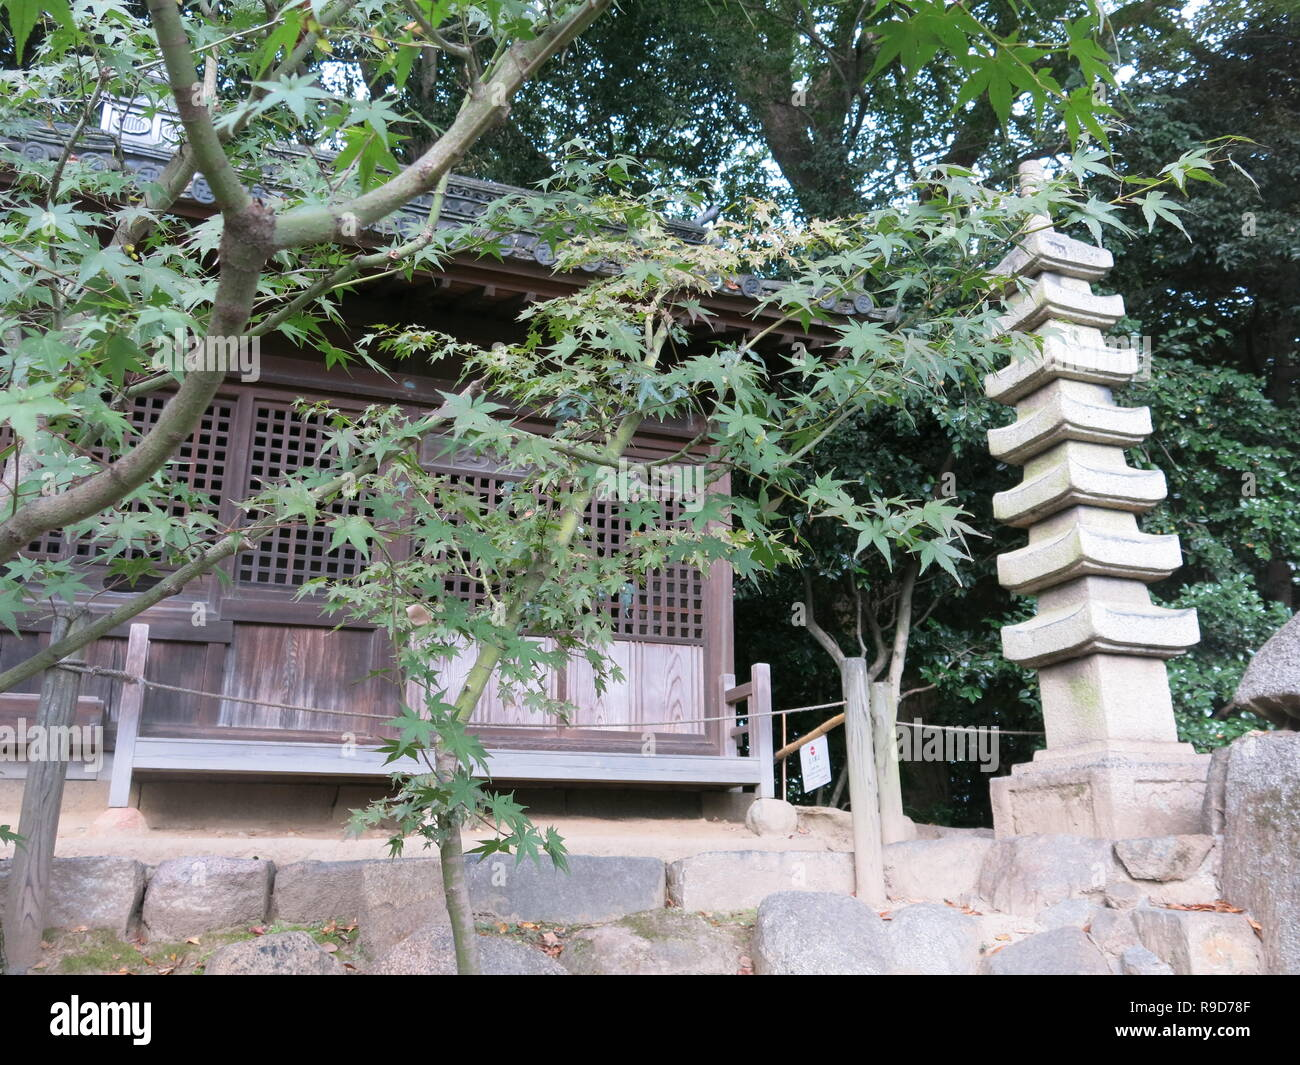 Photo at Korakuen Garden, one of the Three Great Gardens of Japan; a bench by a stone tower provides a shady spot to relax underneath the maples - Stock Image